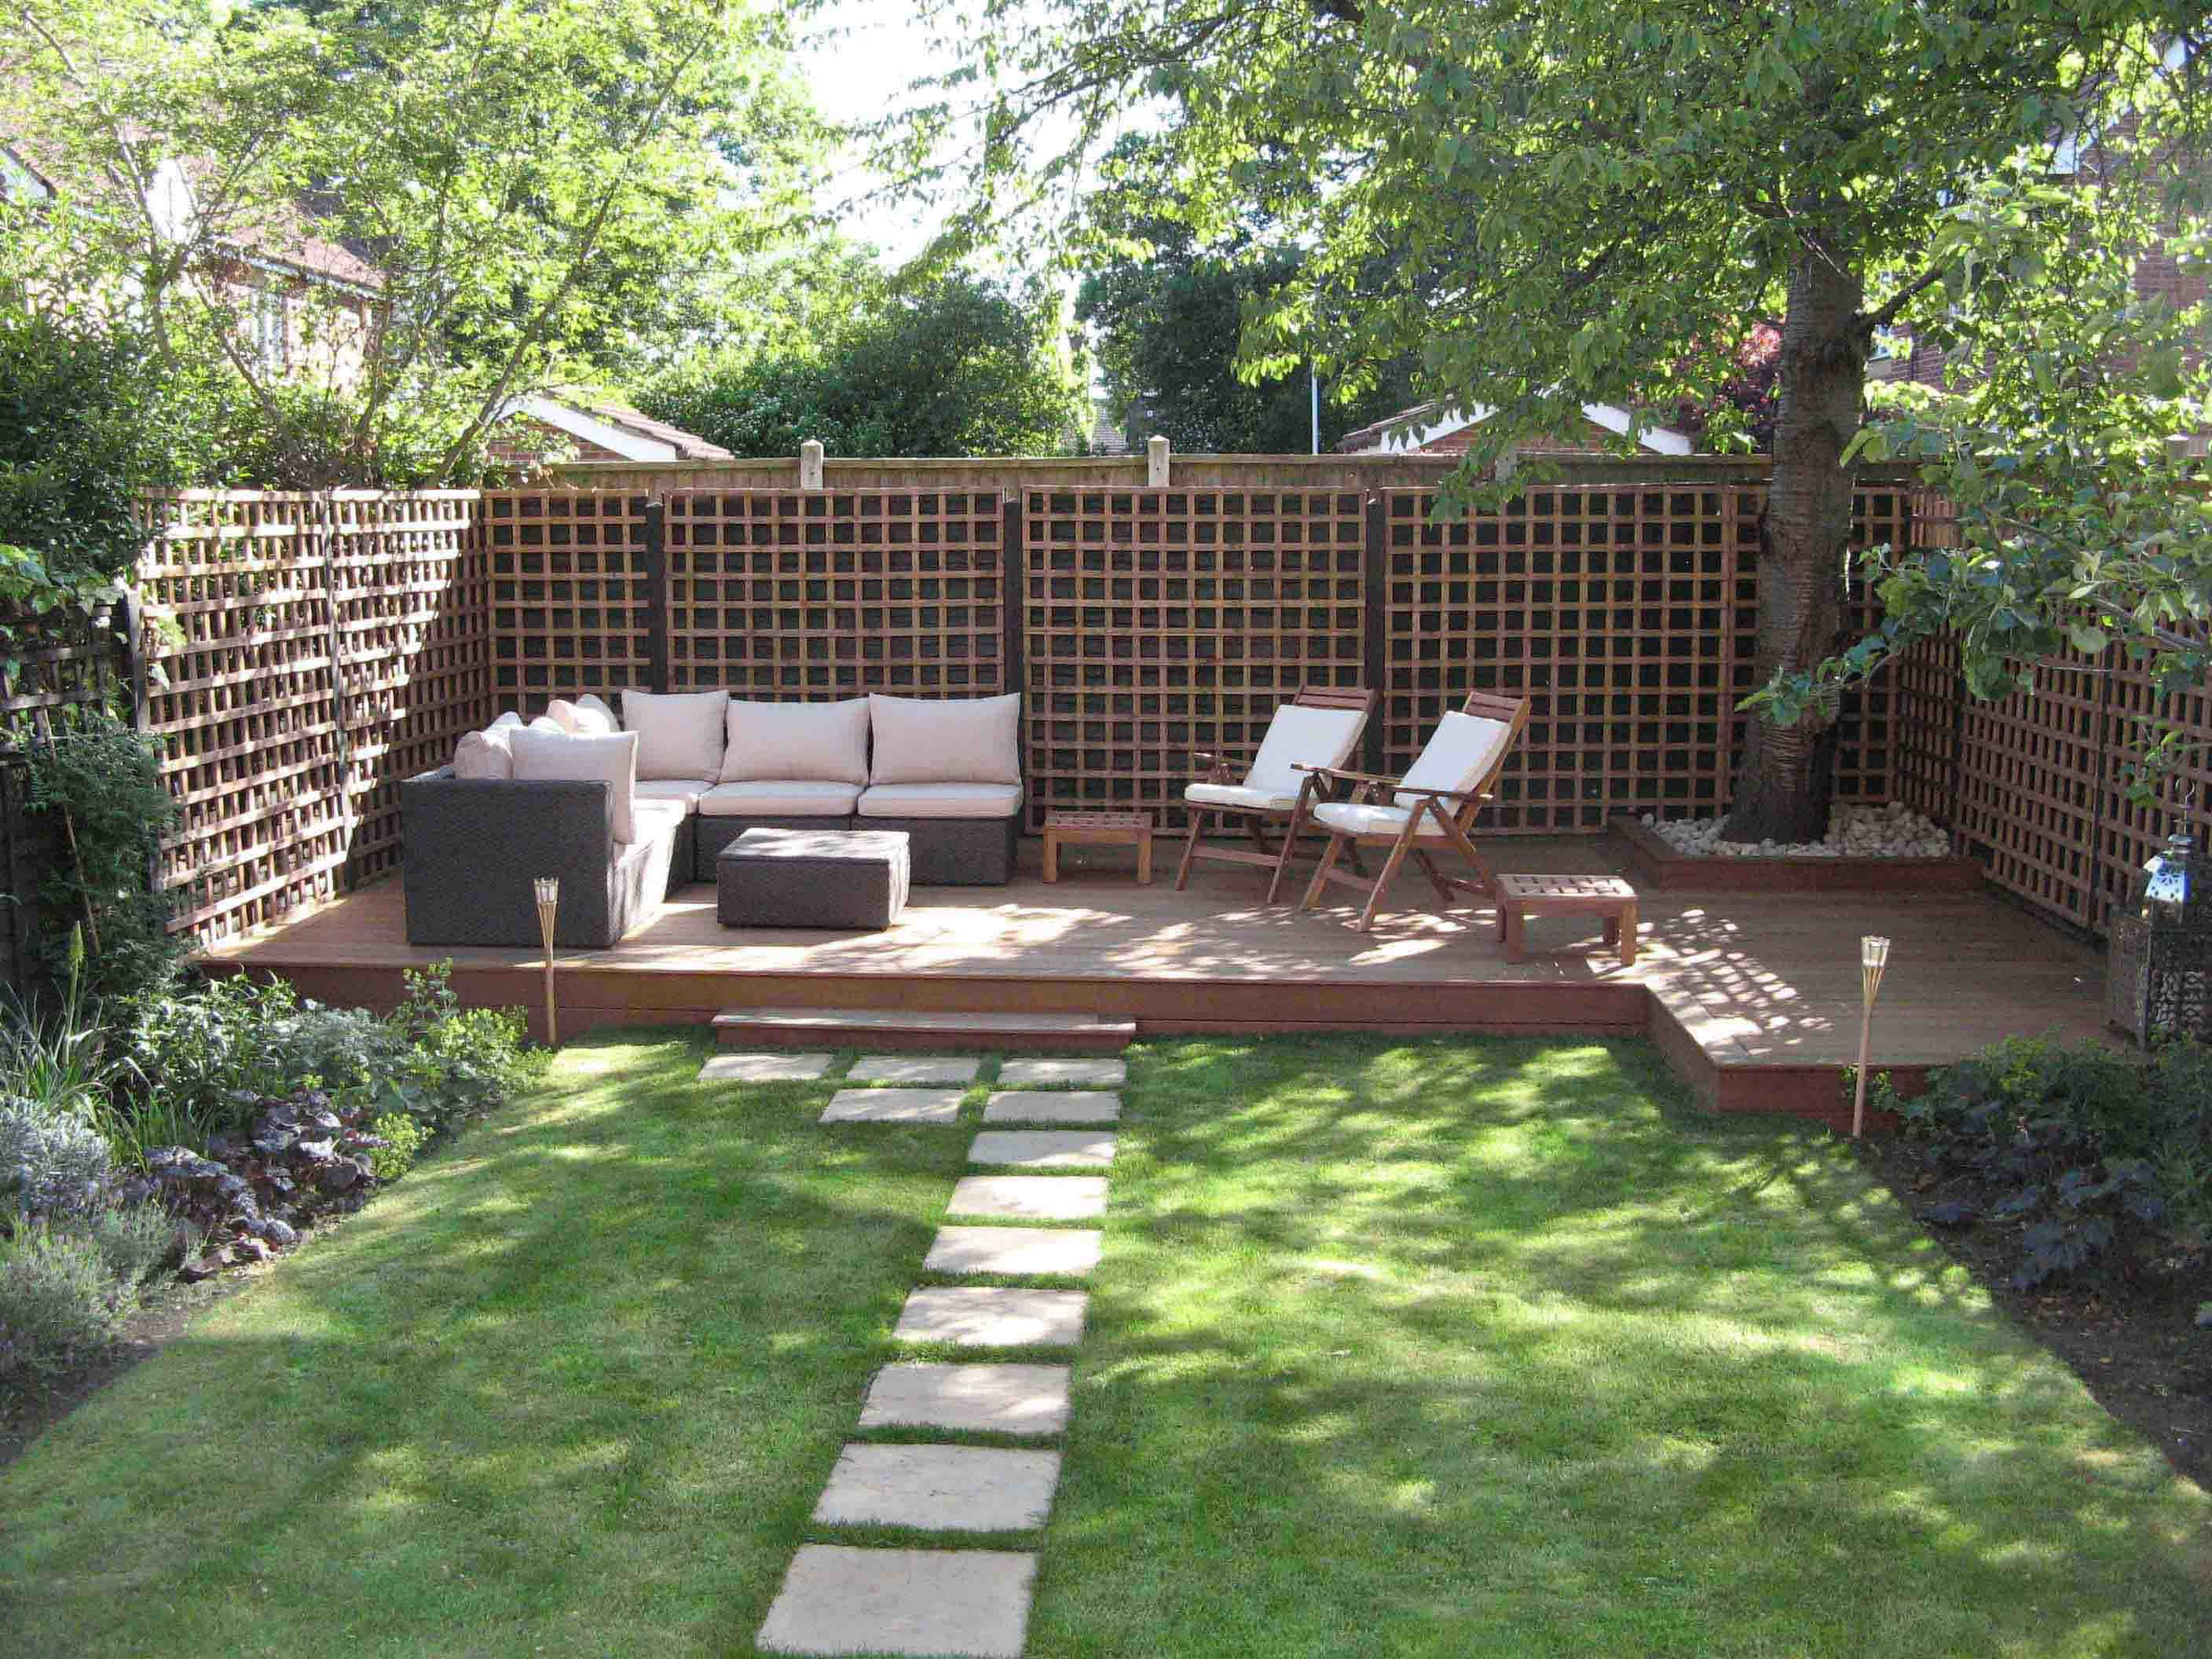 Modern garden design ideas 7 for House garden design ideas